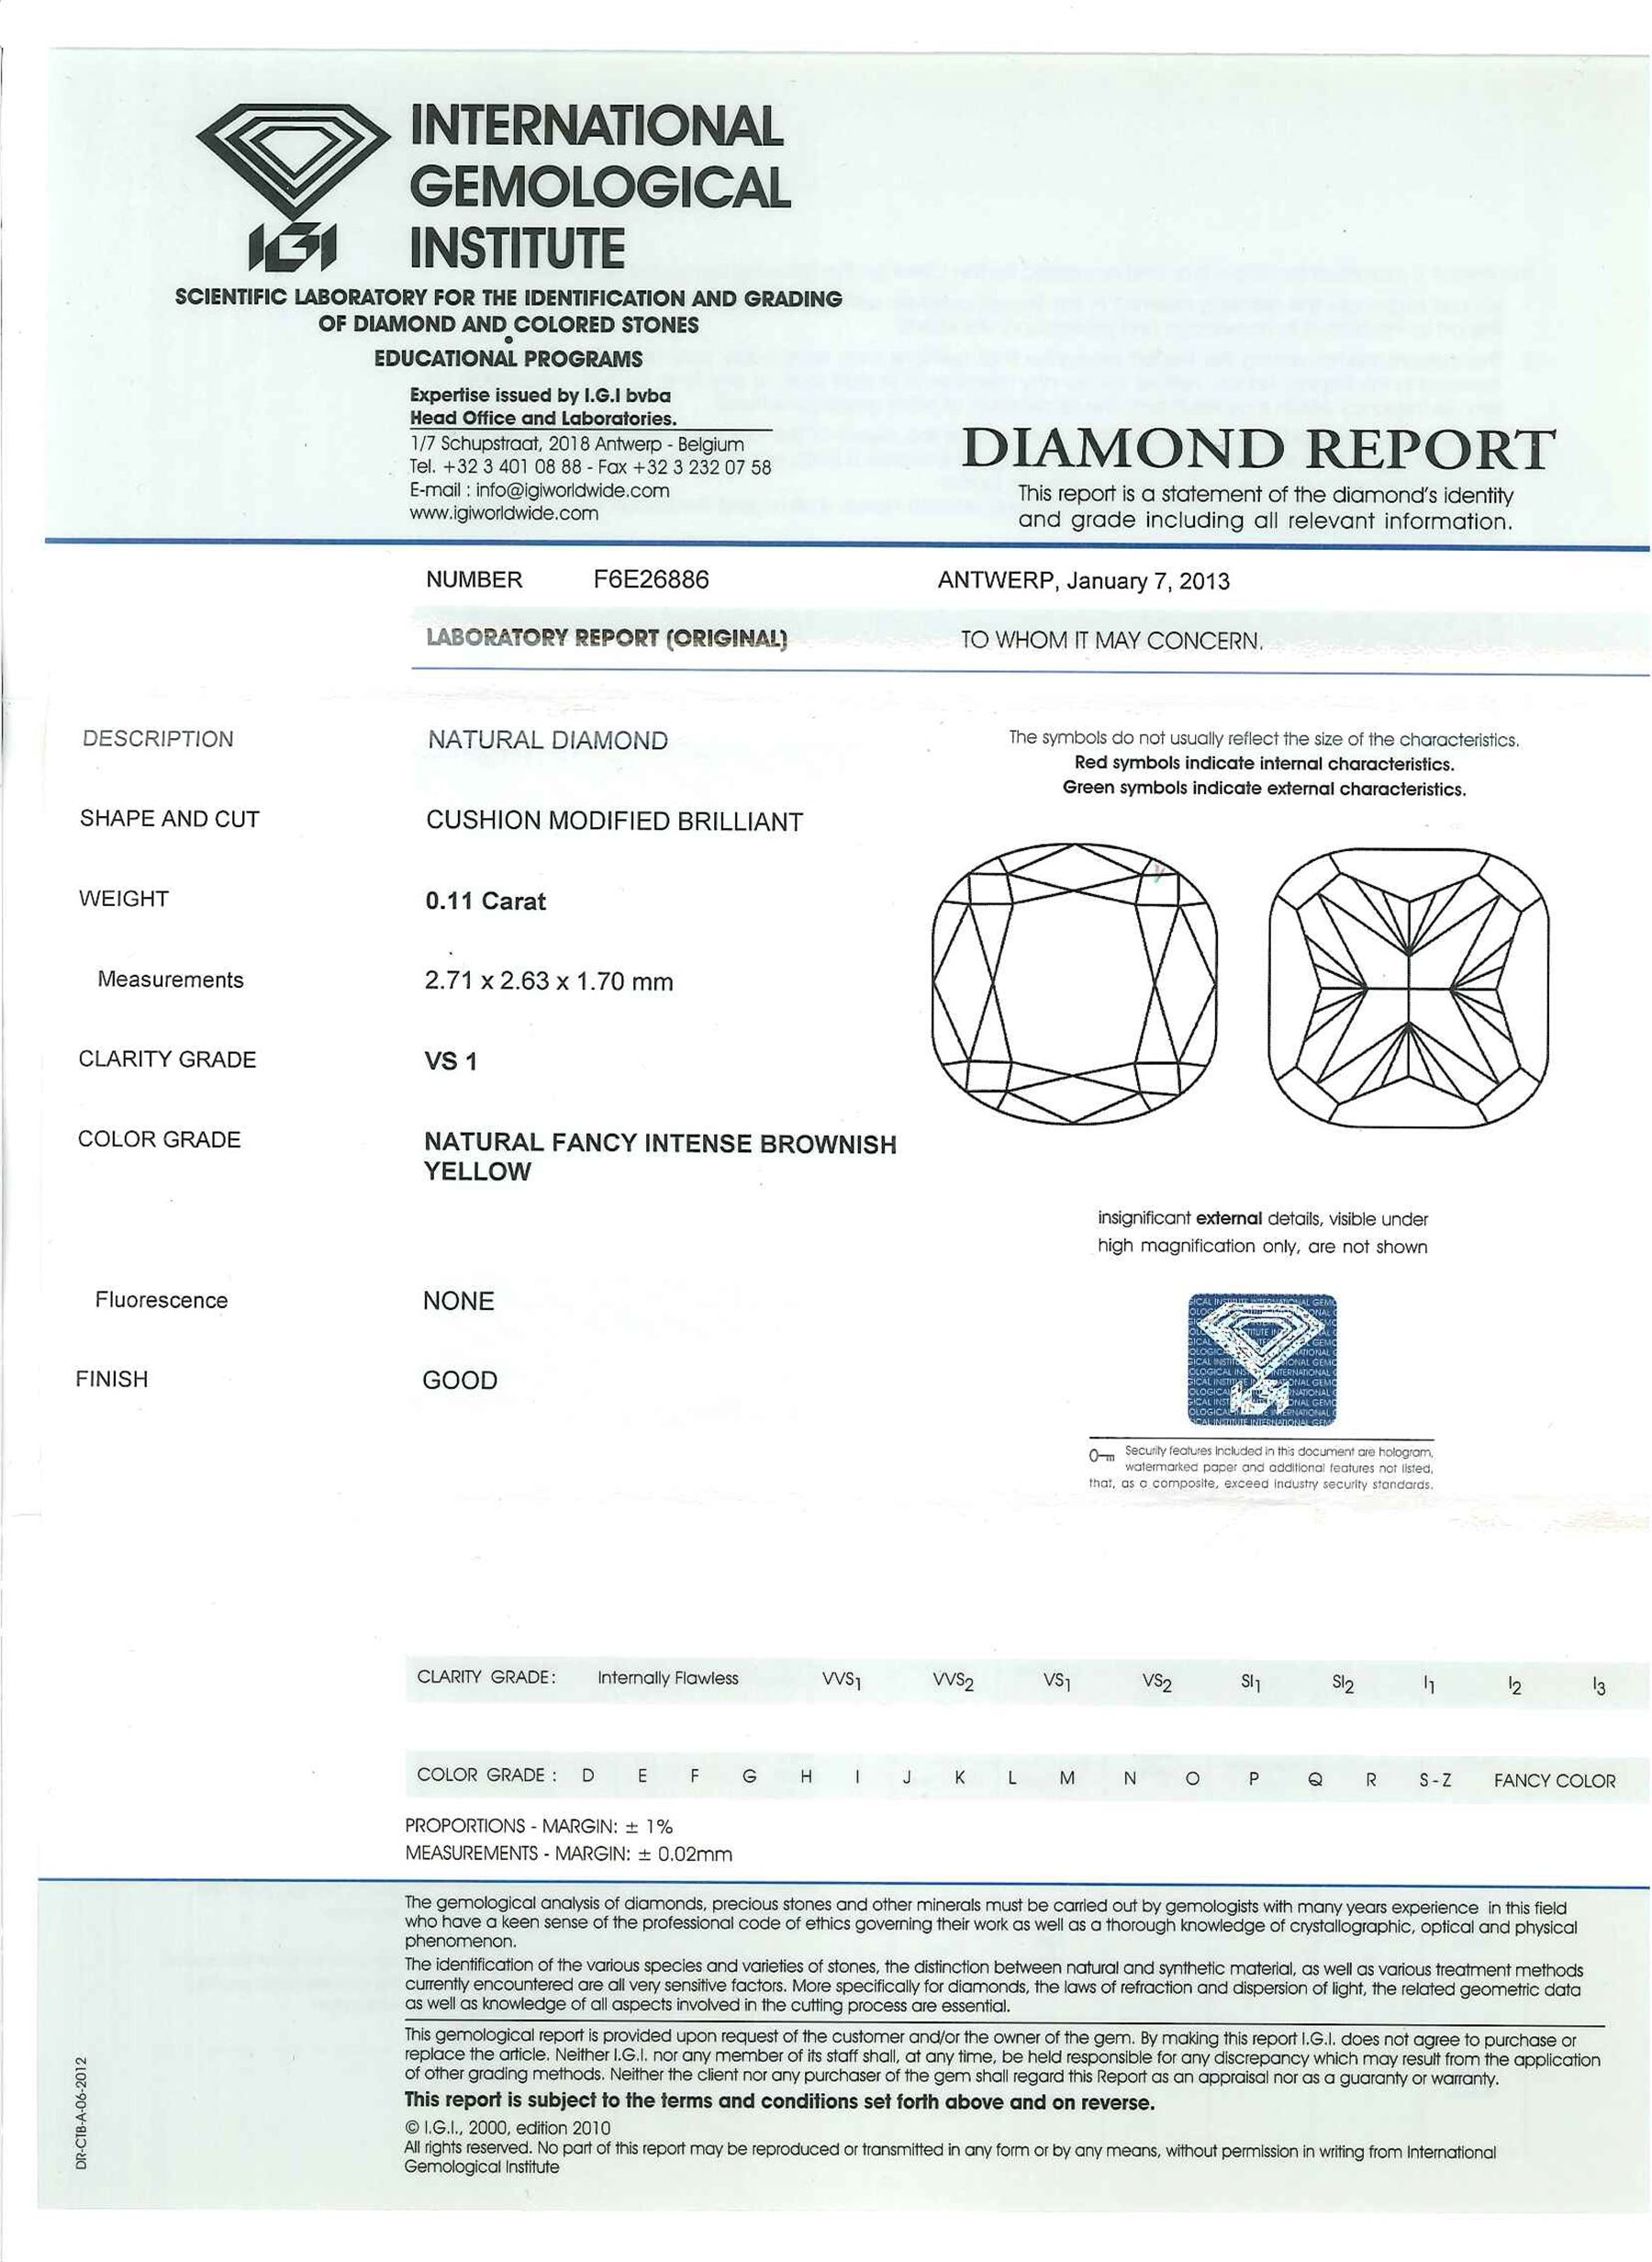 Two certified loose fancy coloured diamonds one round brilliant cut 'fancy light yellow' of 0.13 car - Image 6 of 6